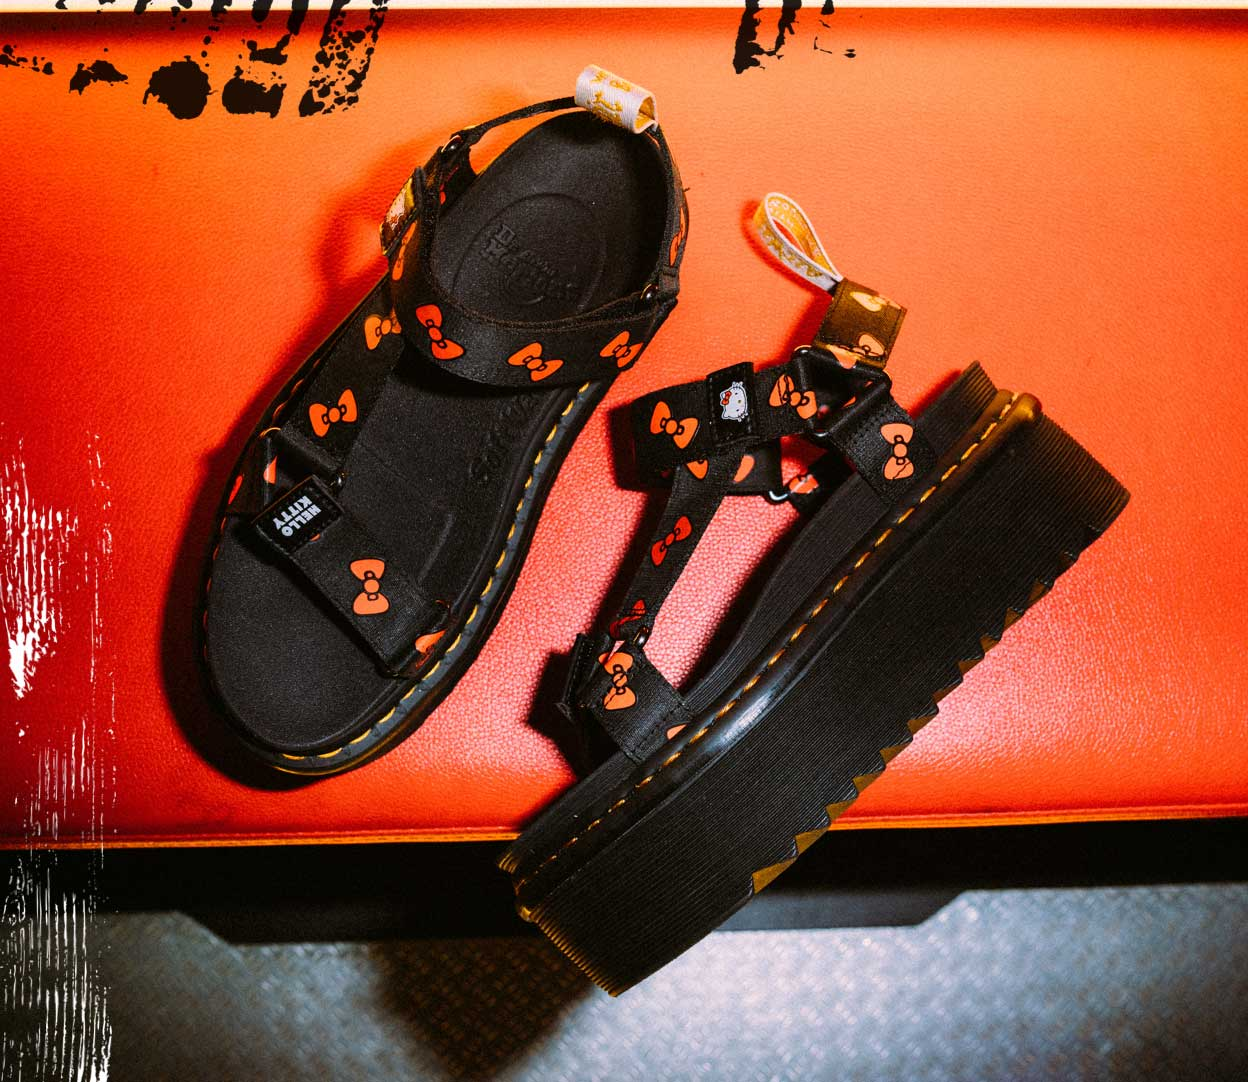 03_Desktop_Dr_Martens_Hello_Kitty_vegan_sandal-min